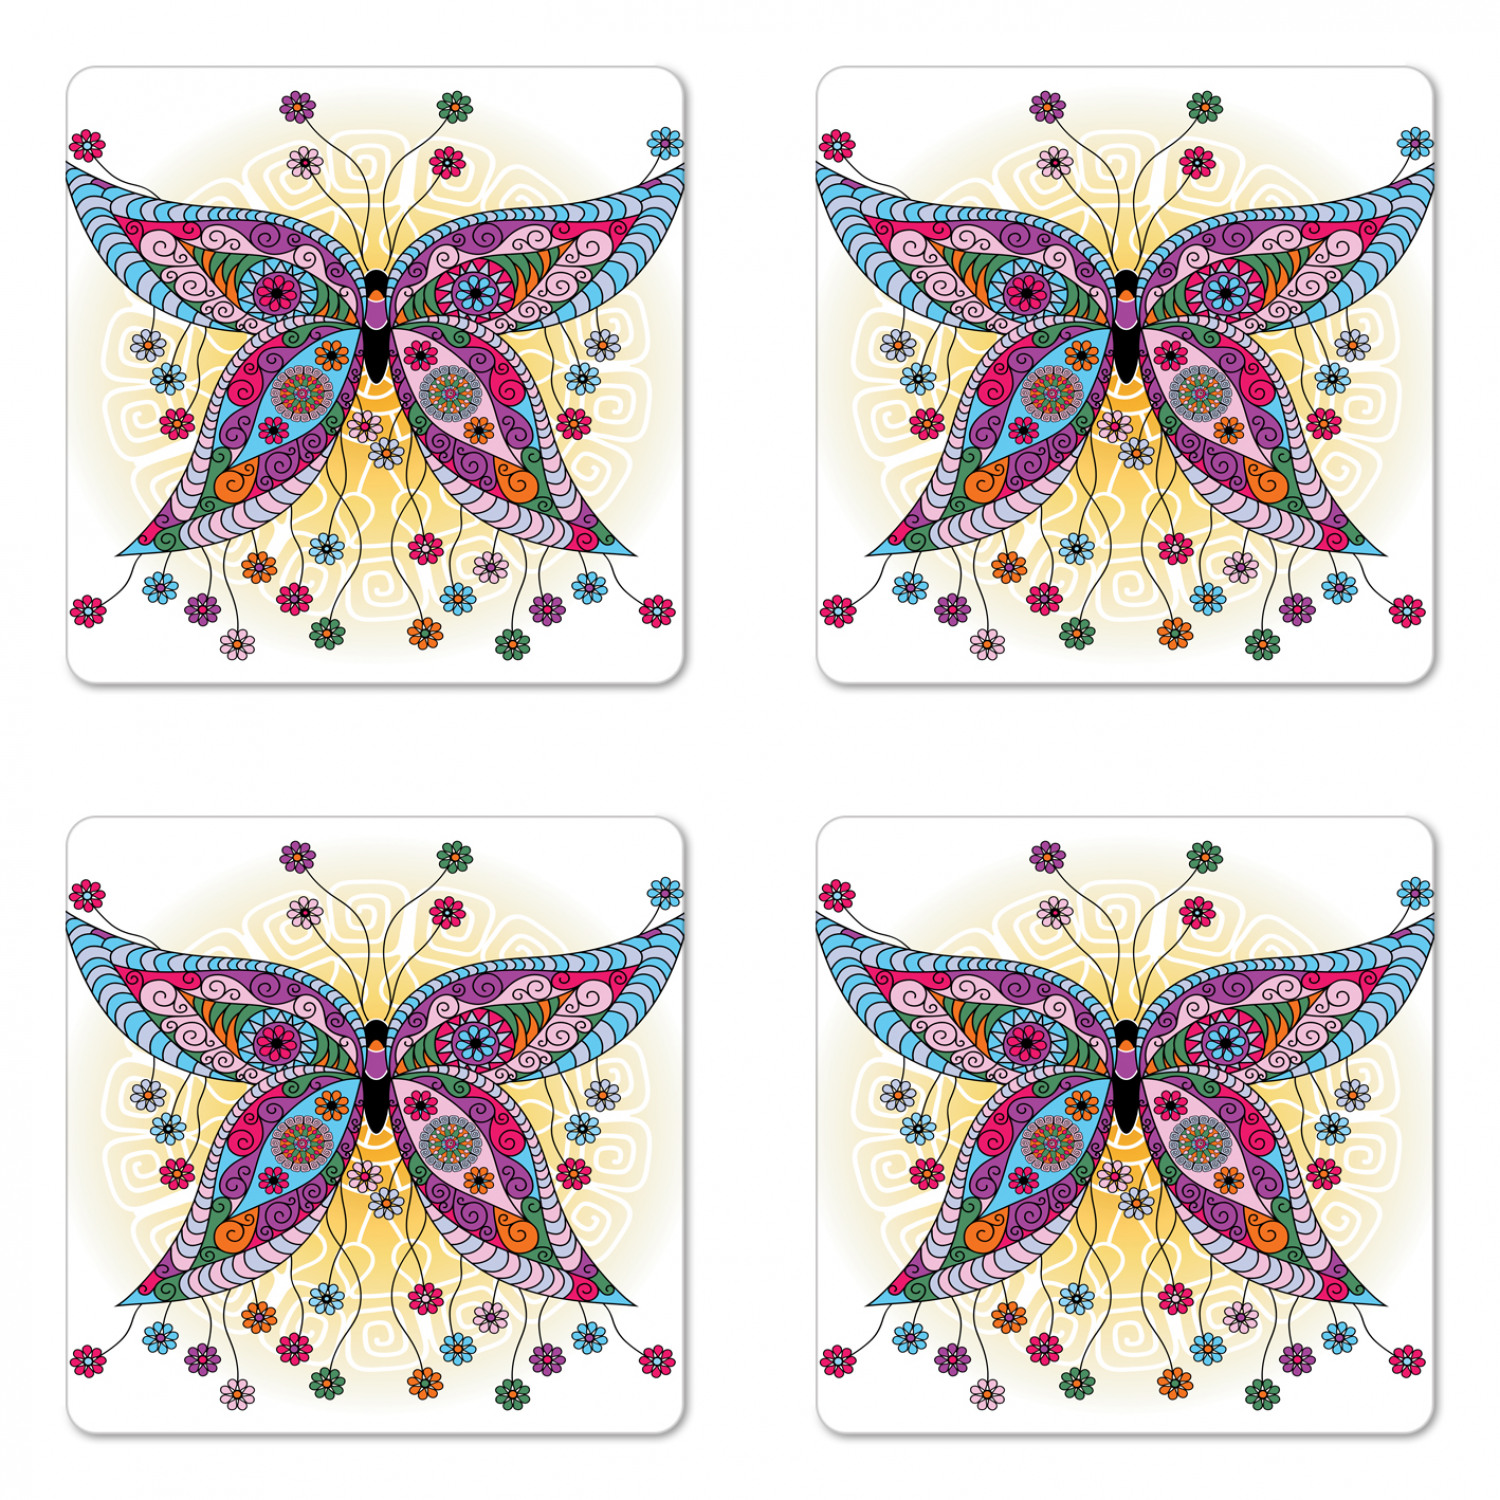 Butterfly Coaster Set Of 4 Moth With Fantasy Spring Floral Blooms On Sunny Backdrop Image Square Hardboard Gloss Coasters Standard Size Multicolor By Ambesonne Walmart Com Walmart Com